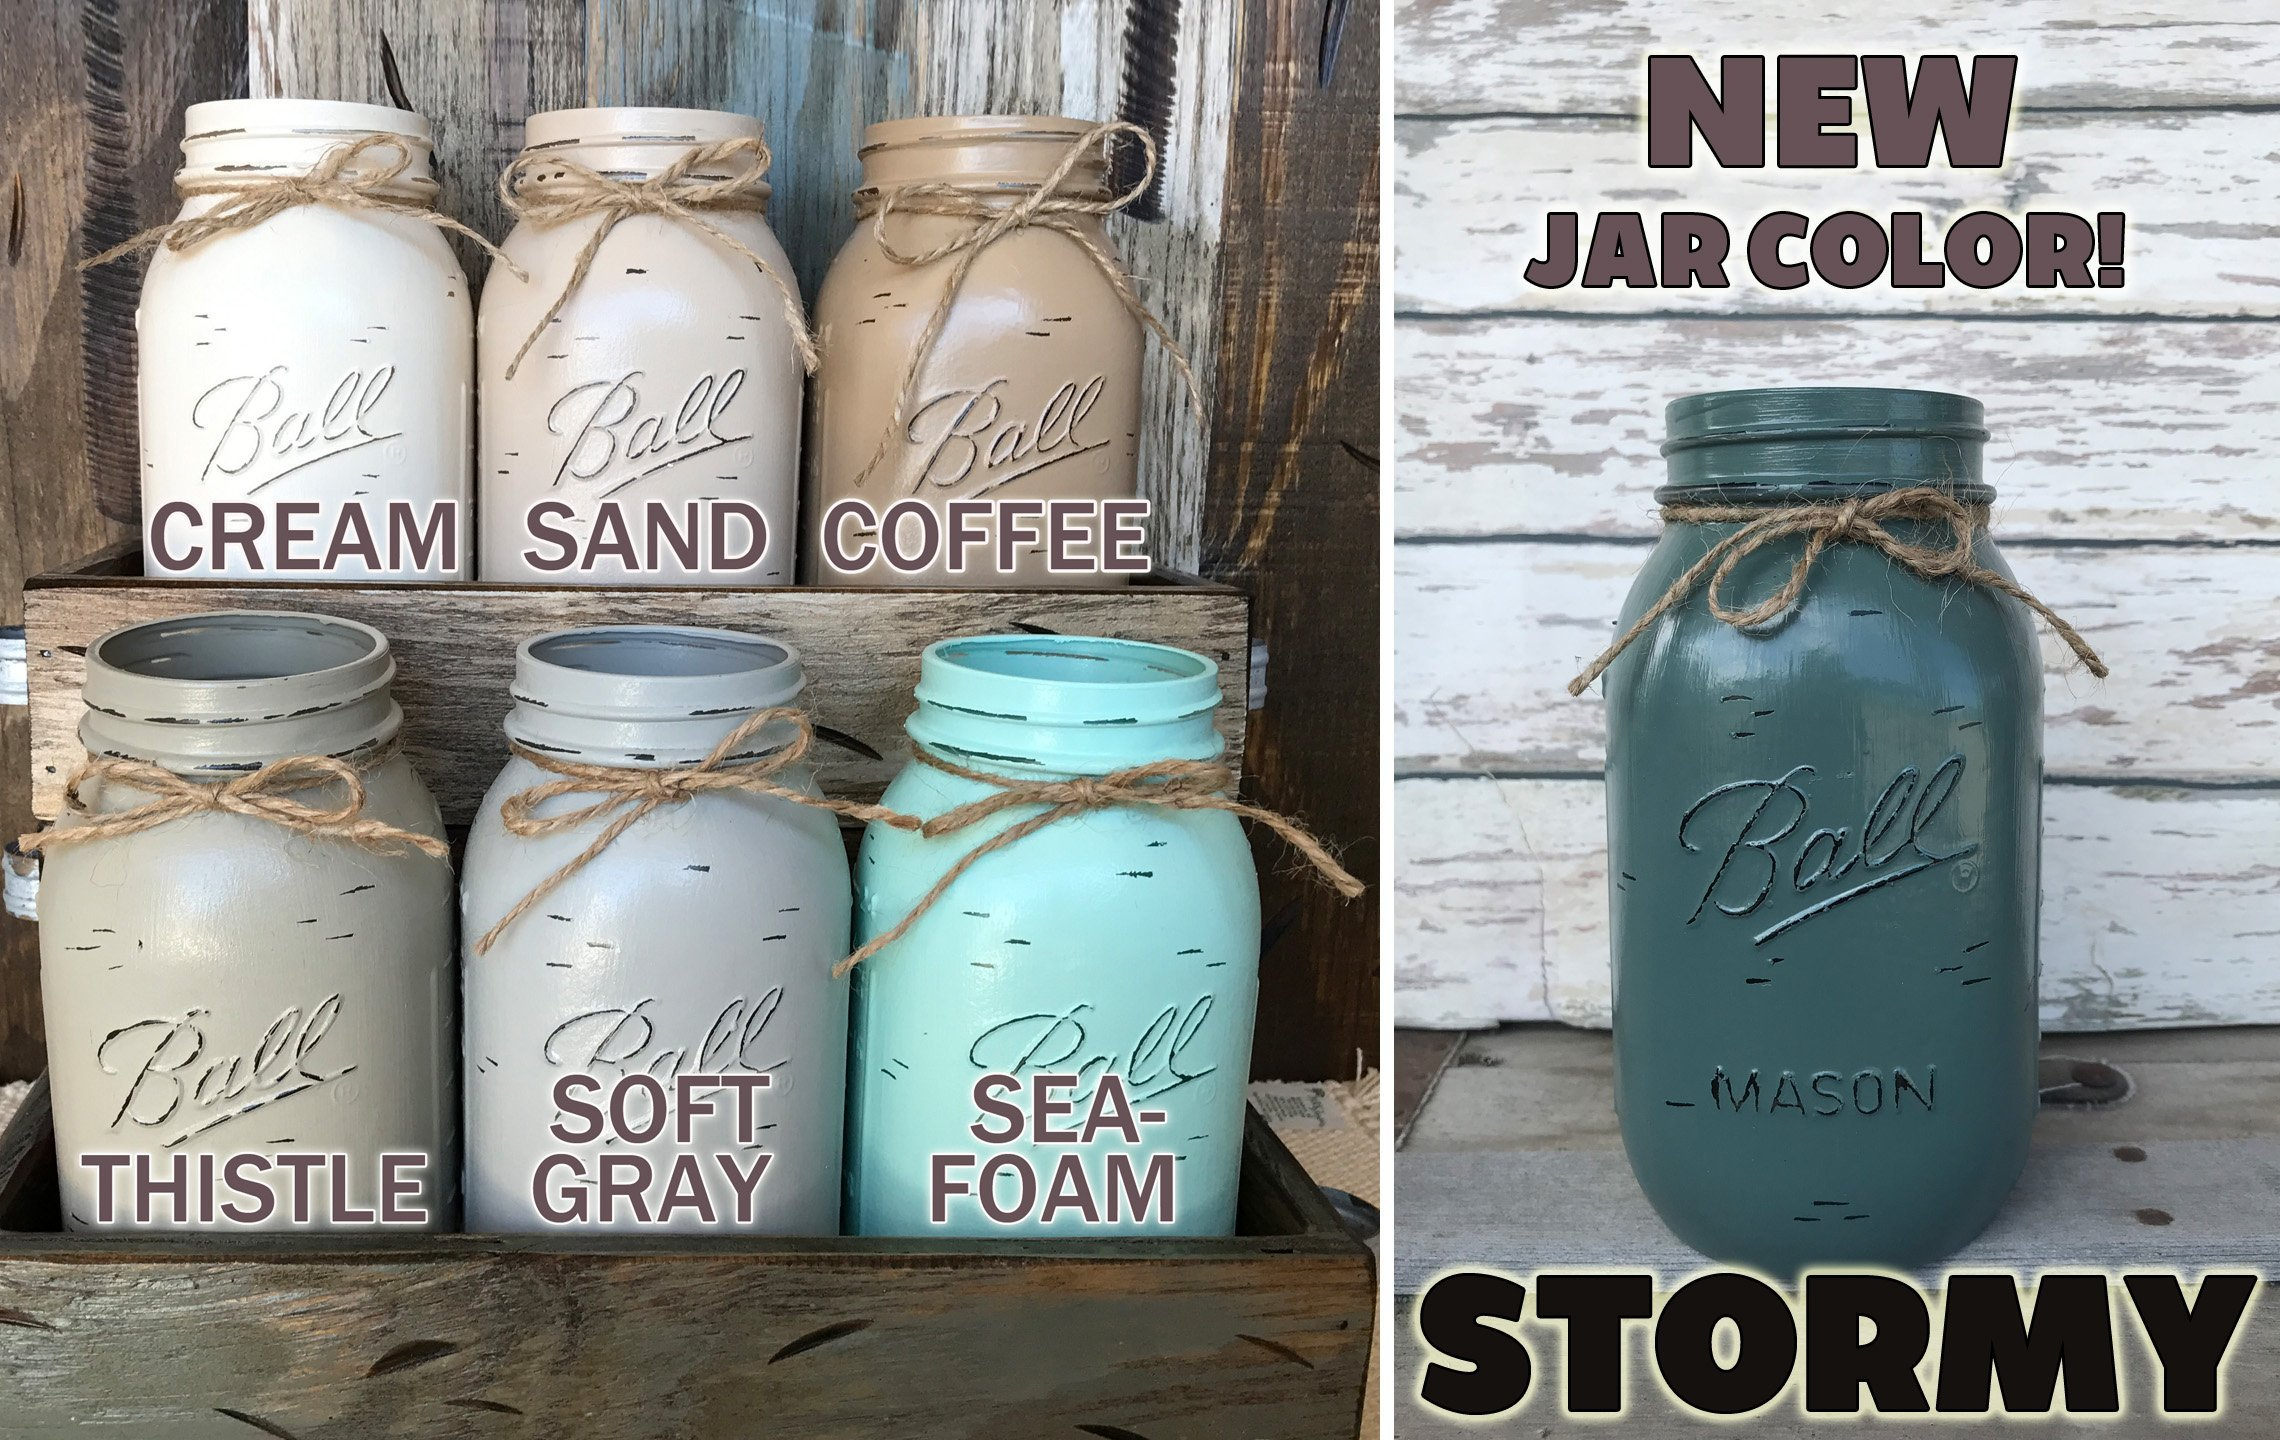 Mason Canning Jar Kitchen Farmhouse Table Centerpiece with 5 Hand Painted Ball QUART Jars in Distressed Wood Tray rusty handles *Antique White Red Brown Blue -BEAUTIFUL Hydrangea Flowers are optional by Wooden Hearts (Image #5)